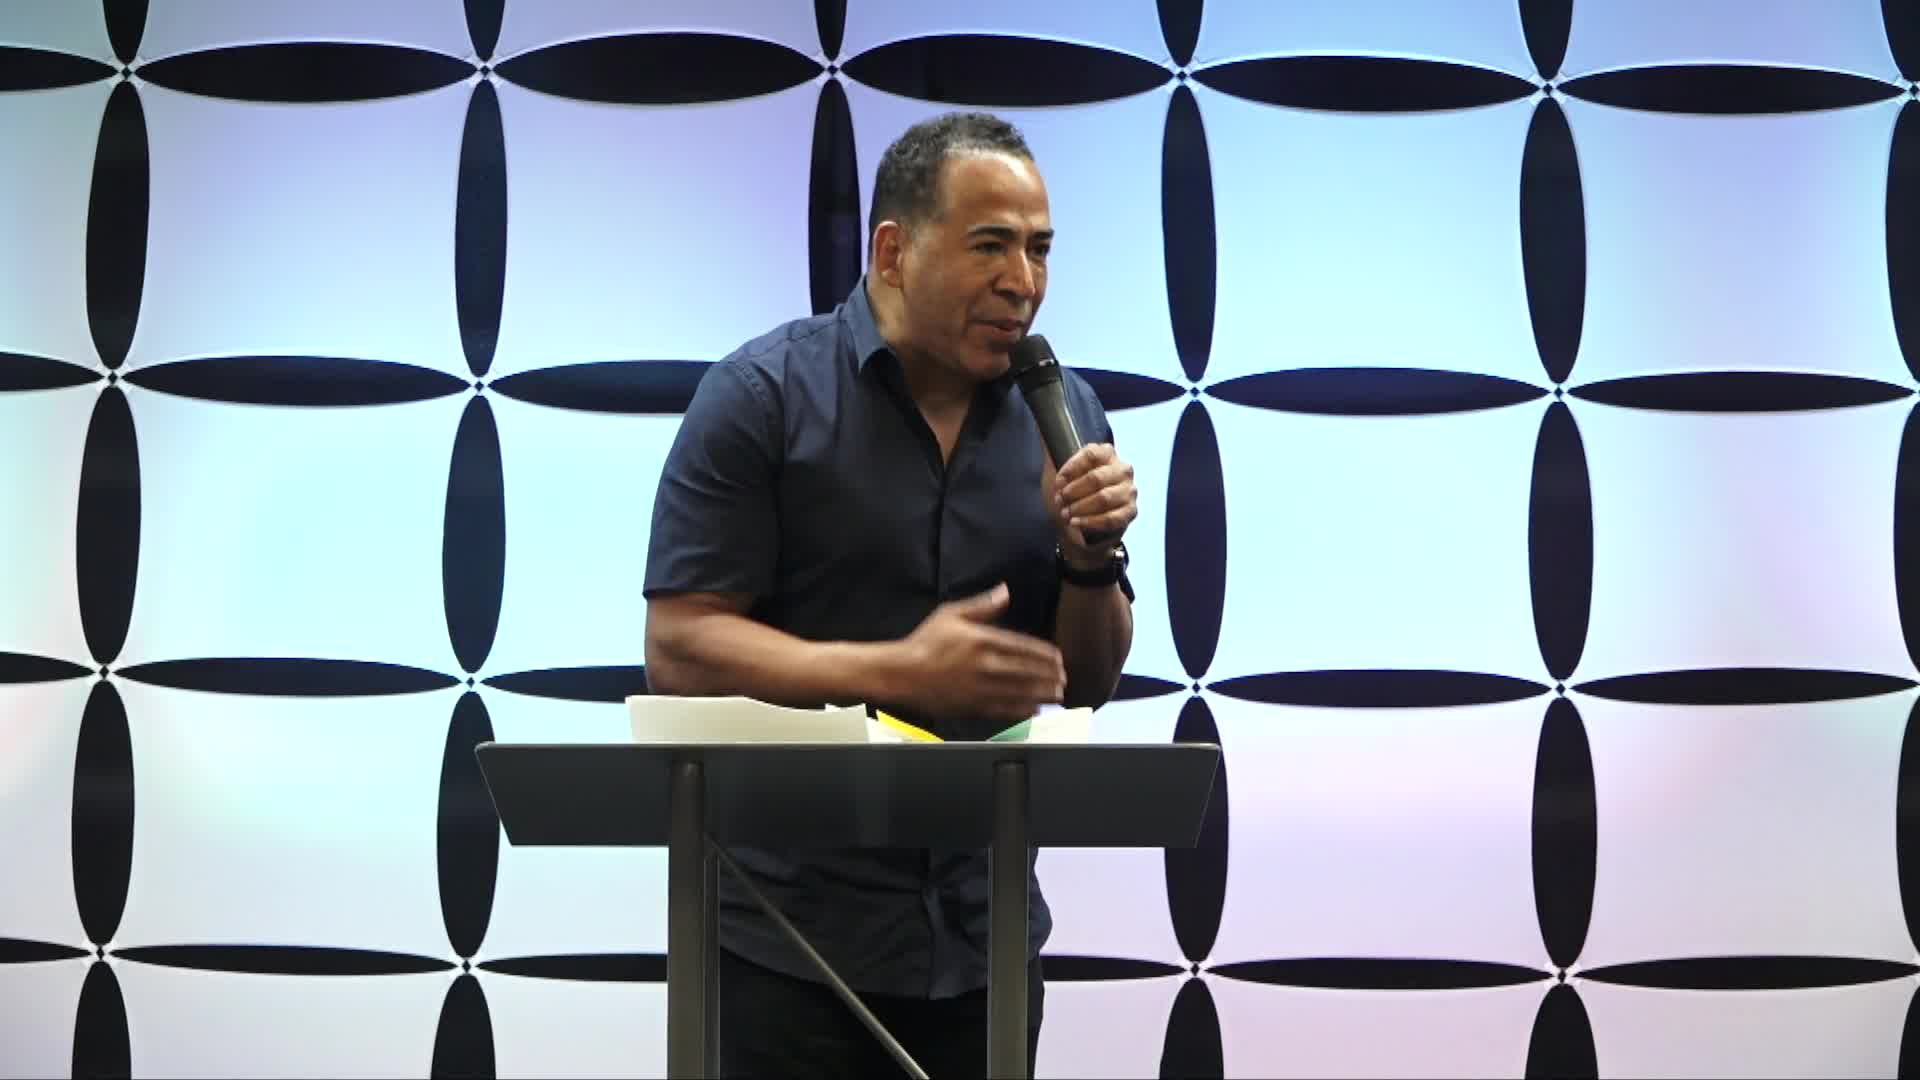 Tim Storey At The Body Of Christ Church International 08-17-2018-1